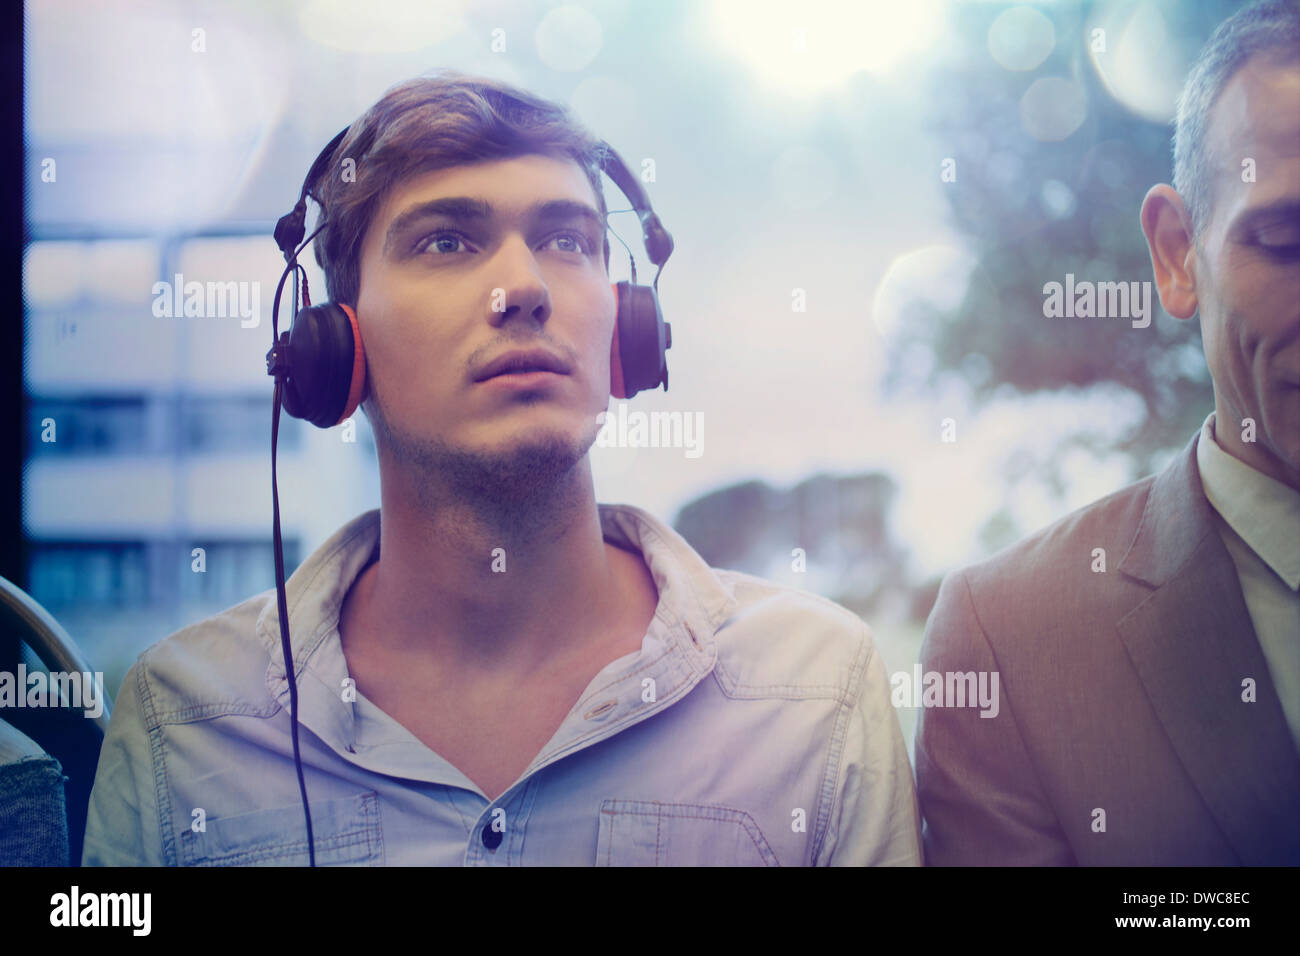 Young man daydreaming and listening to headphones on train - Stock Image